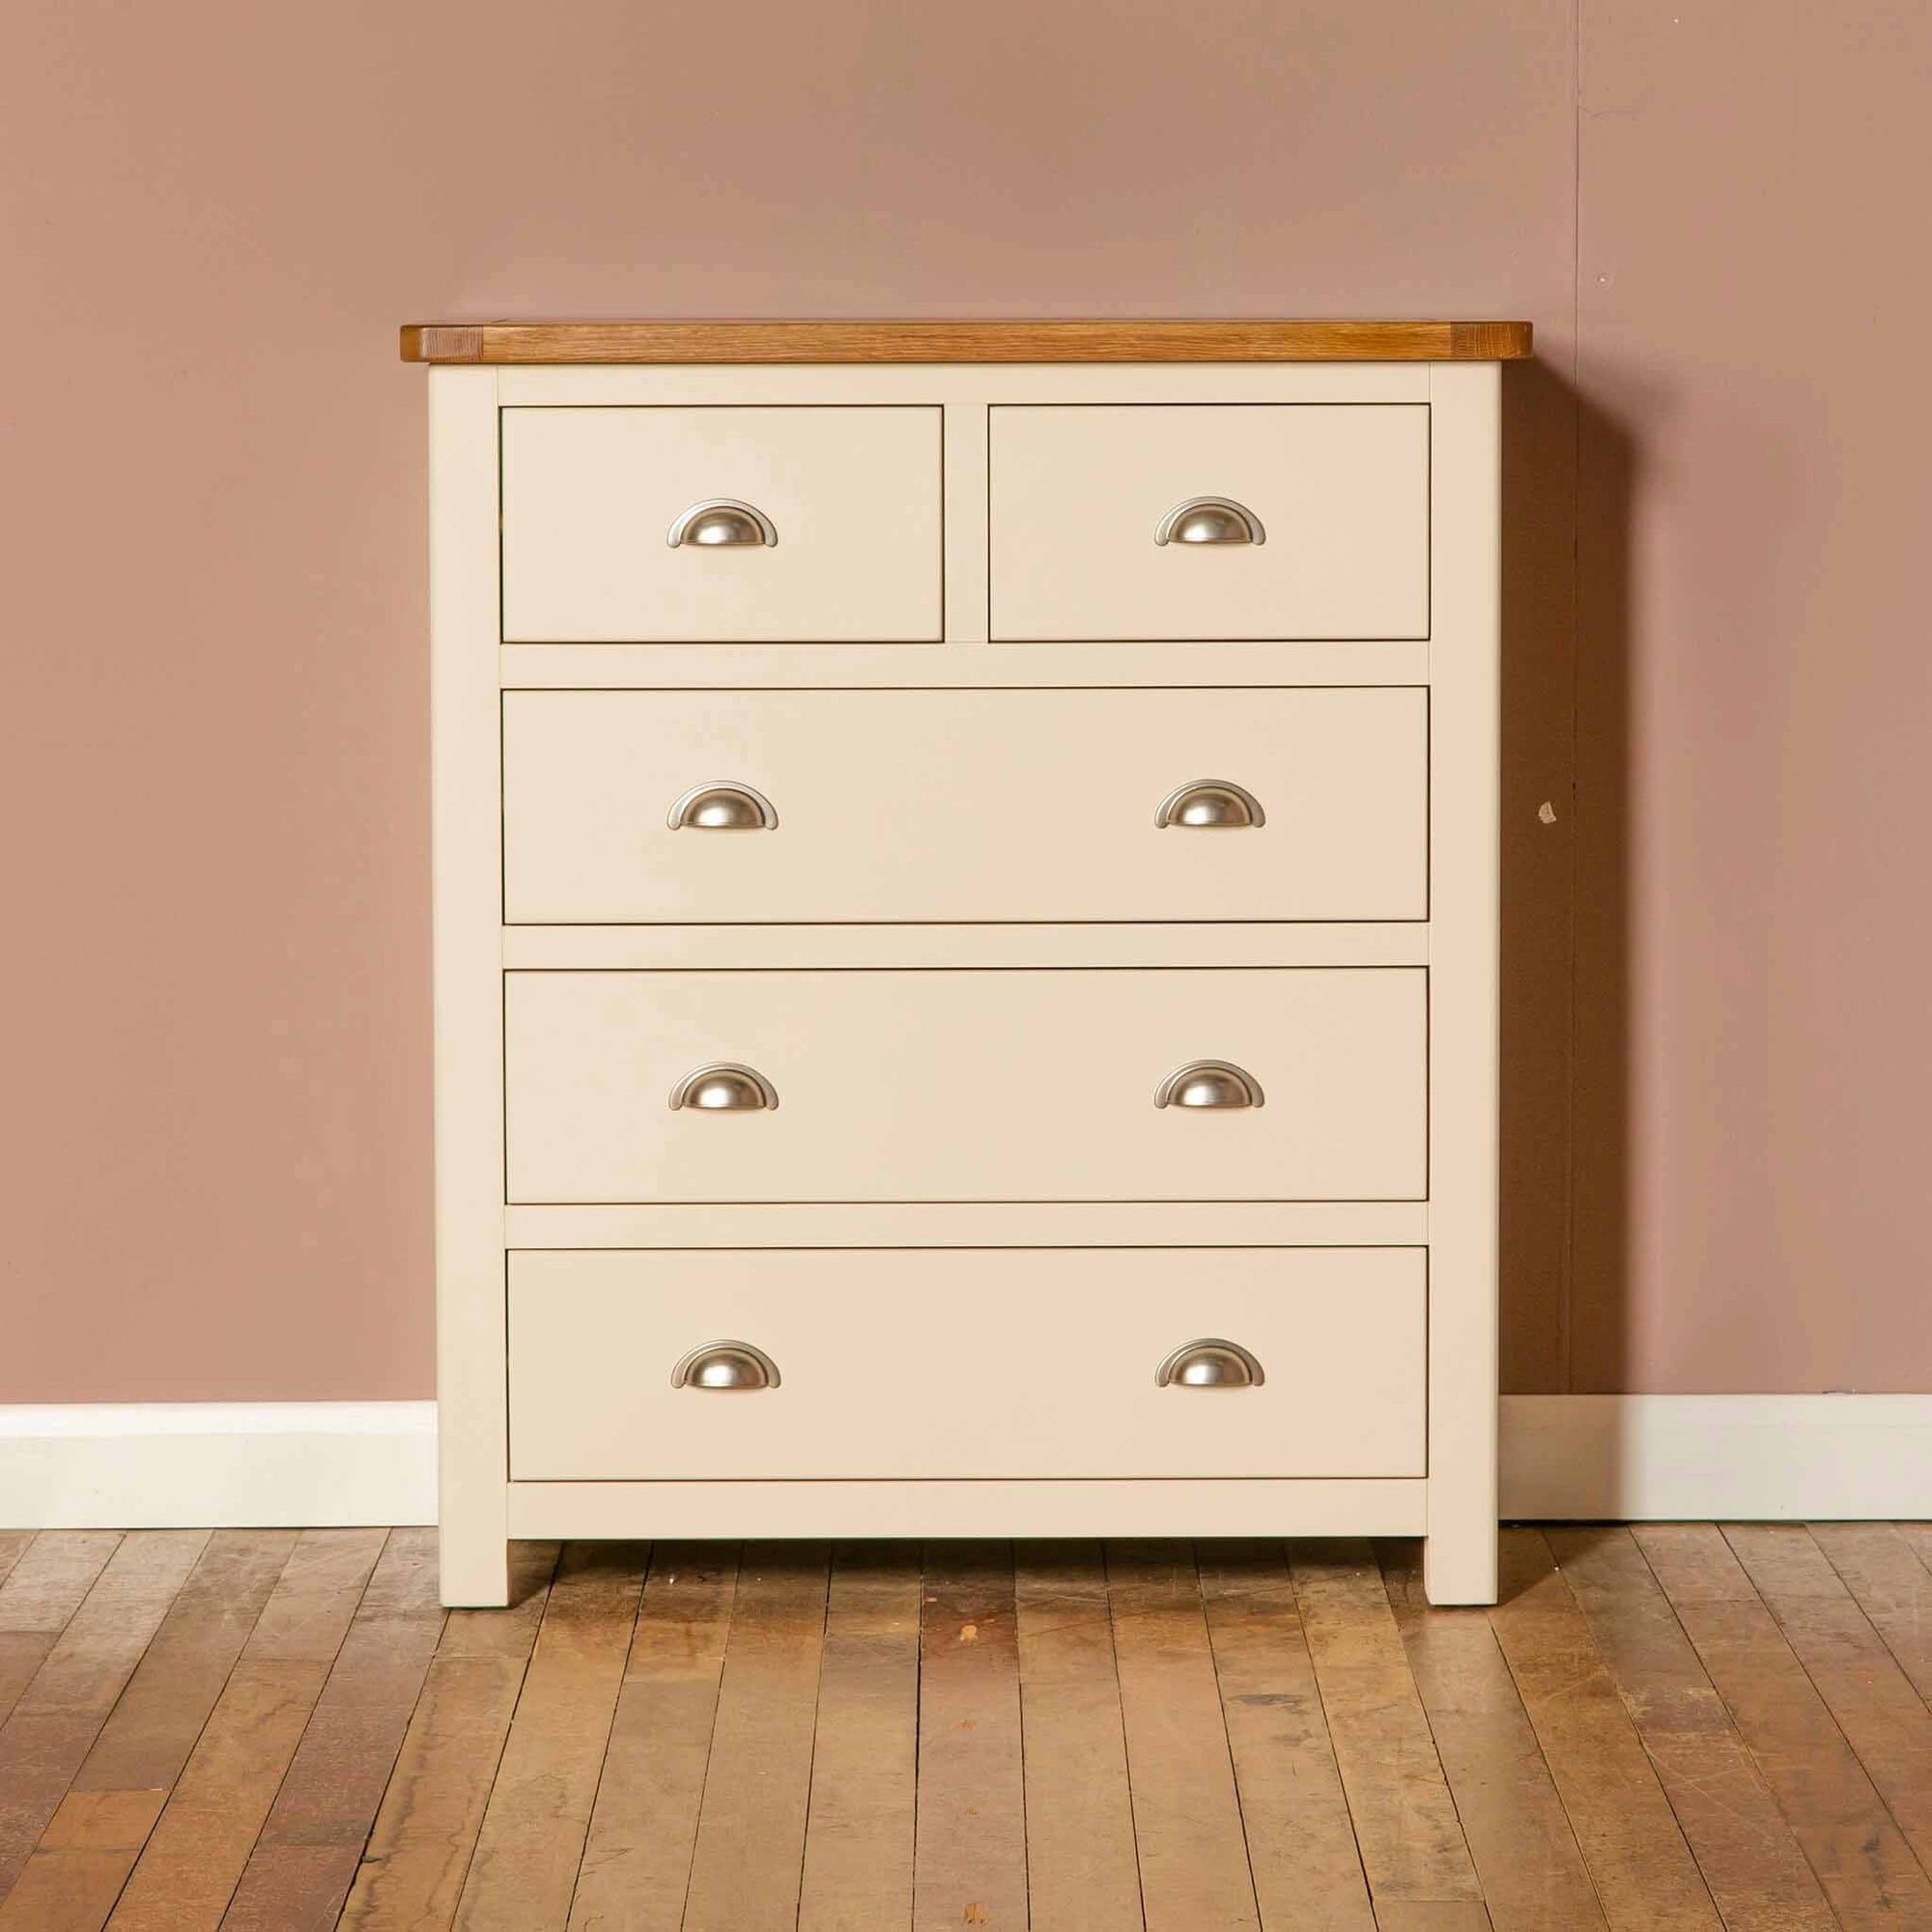 The Padstow Cream Wooden Bedroom Chest of Drawers with Oak Top from Roseland Furniture